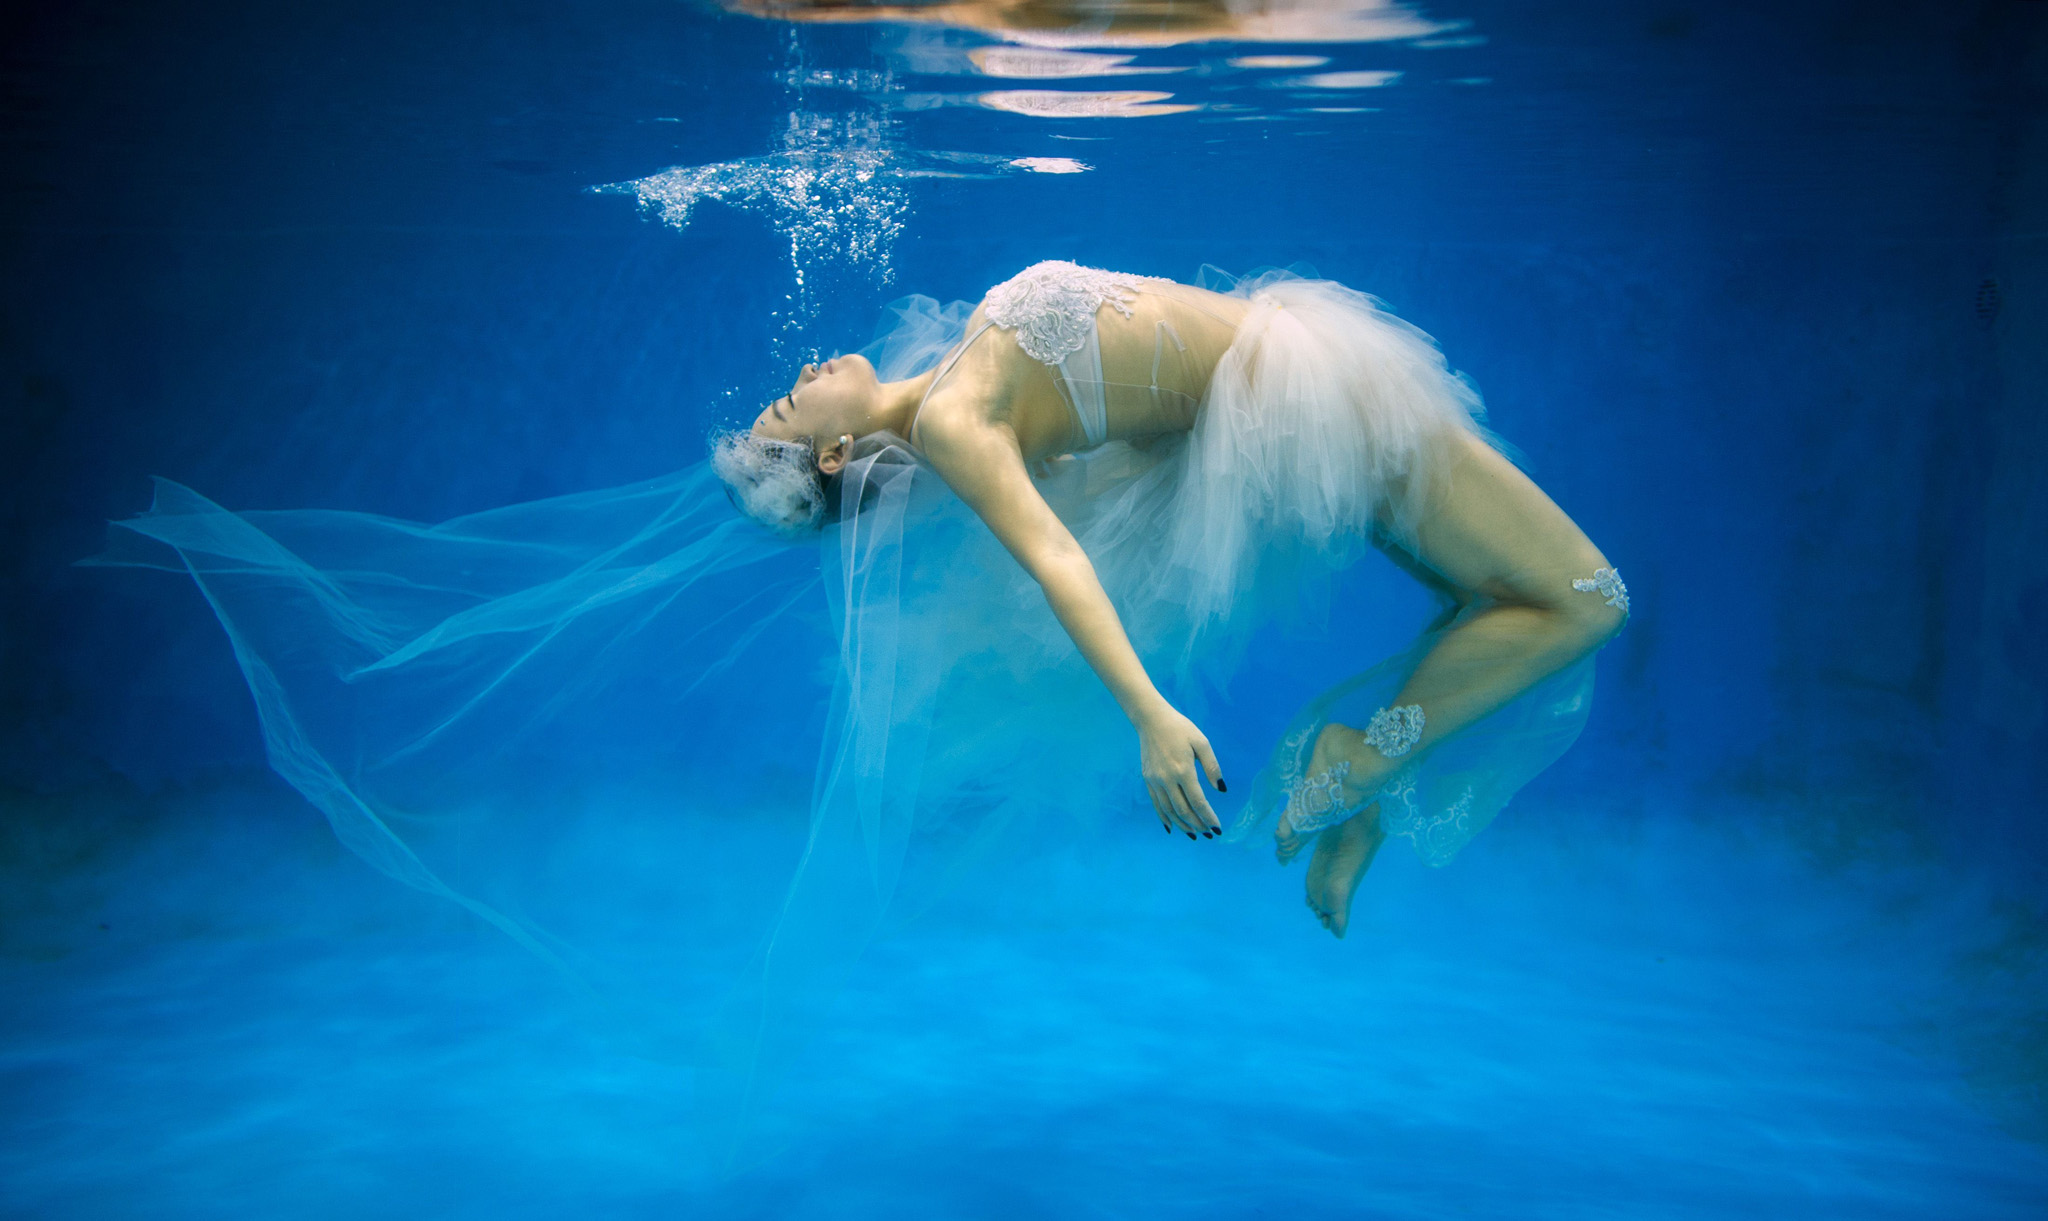 TOPSHOTS This photo taken on September 3...TOPSHOTS This photo taken on September 3, 2014 shows  Leng Yuting, 26, posing underwater for her wedding pictures at a photo studio in Shanghai, ahead of her wedding next year. Her fiance Riyang said they had their wedding photographs taken underwater because 'its romantic and beautiful'. Mr Wedding studio owner, Tina Lui, started providing underwater pictures four years ago.   AFP PHOTO / JOHANNES EISELEJOHANNES EISELE/AFP/Getty Images